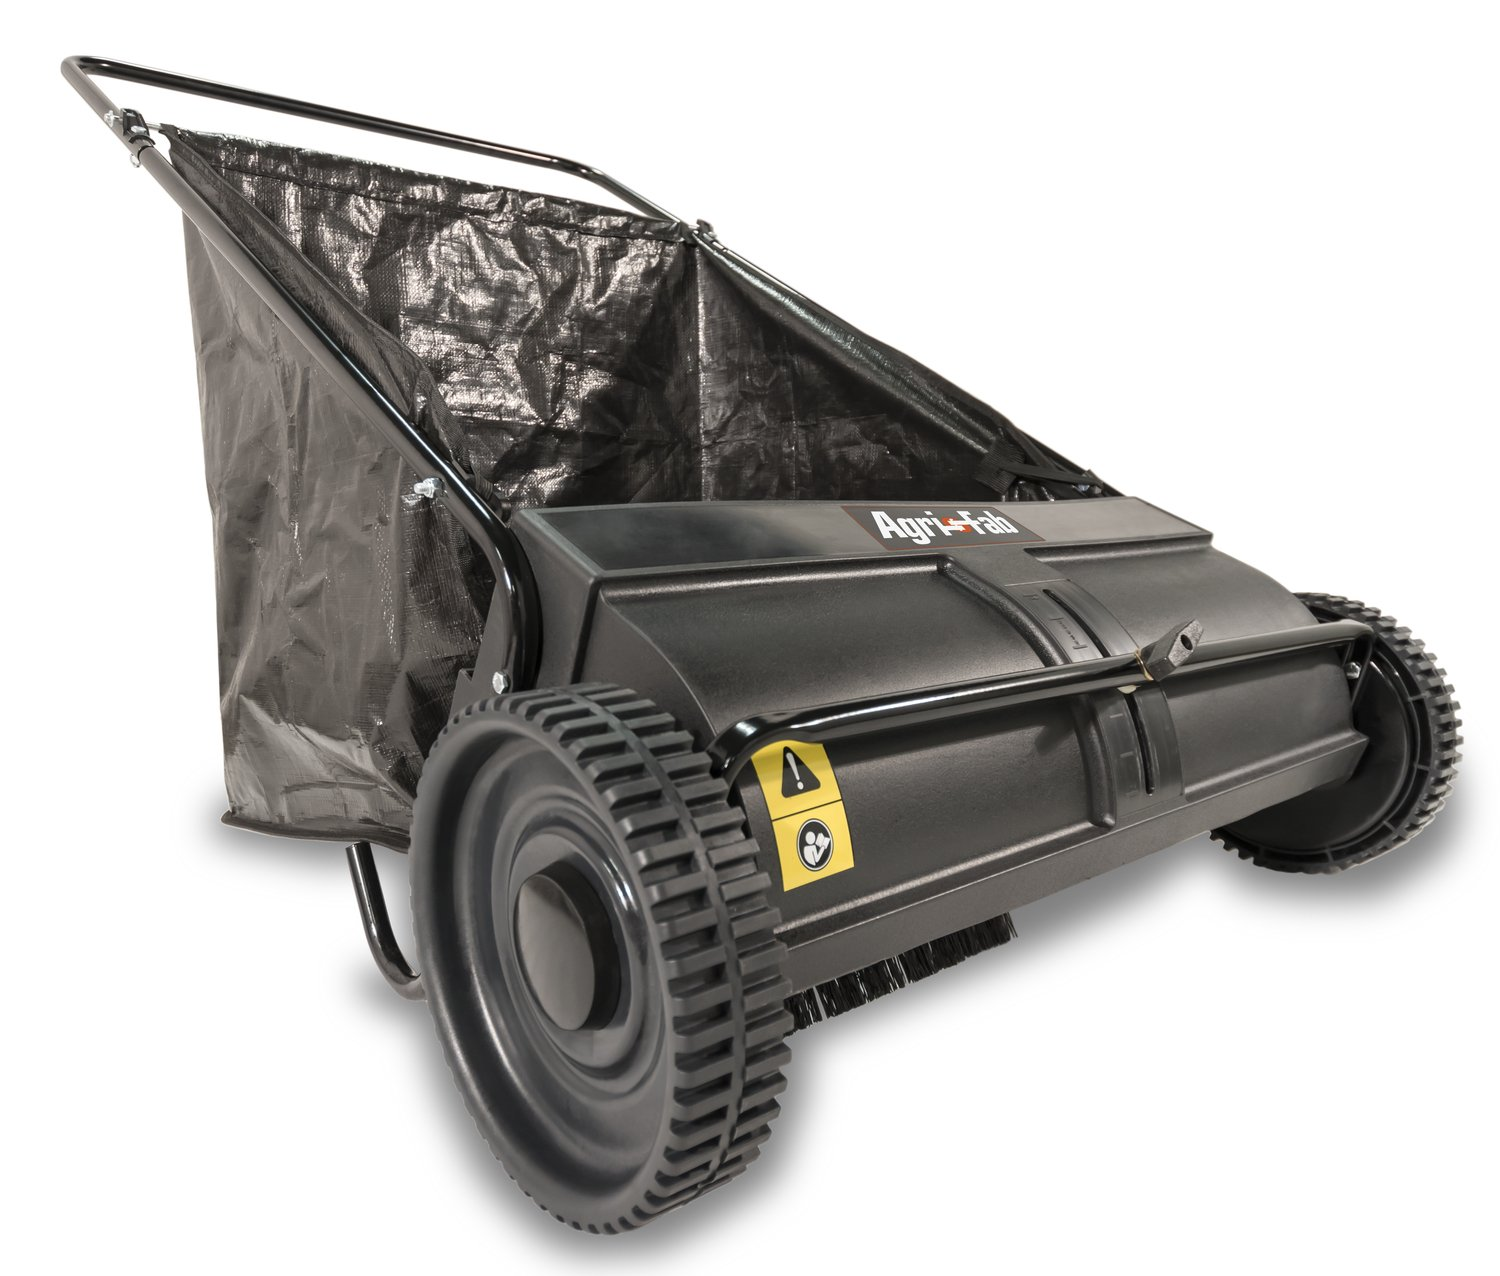 Agri-Fab 45-0218 26-Inch Push Lawn Sweeper, 26 Inches, Black